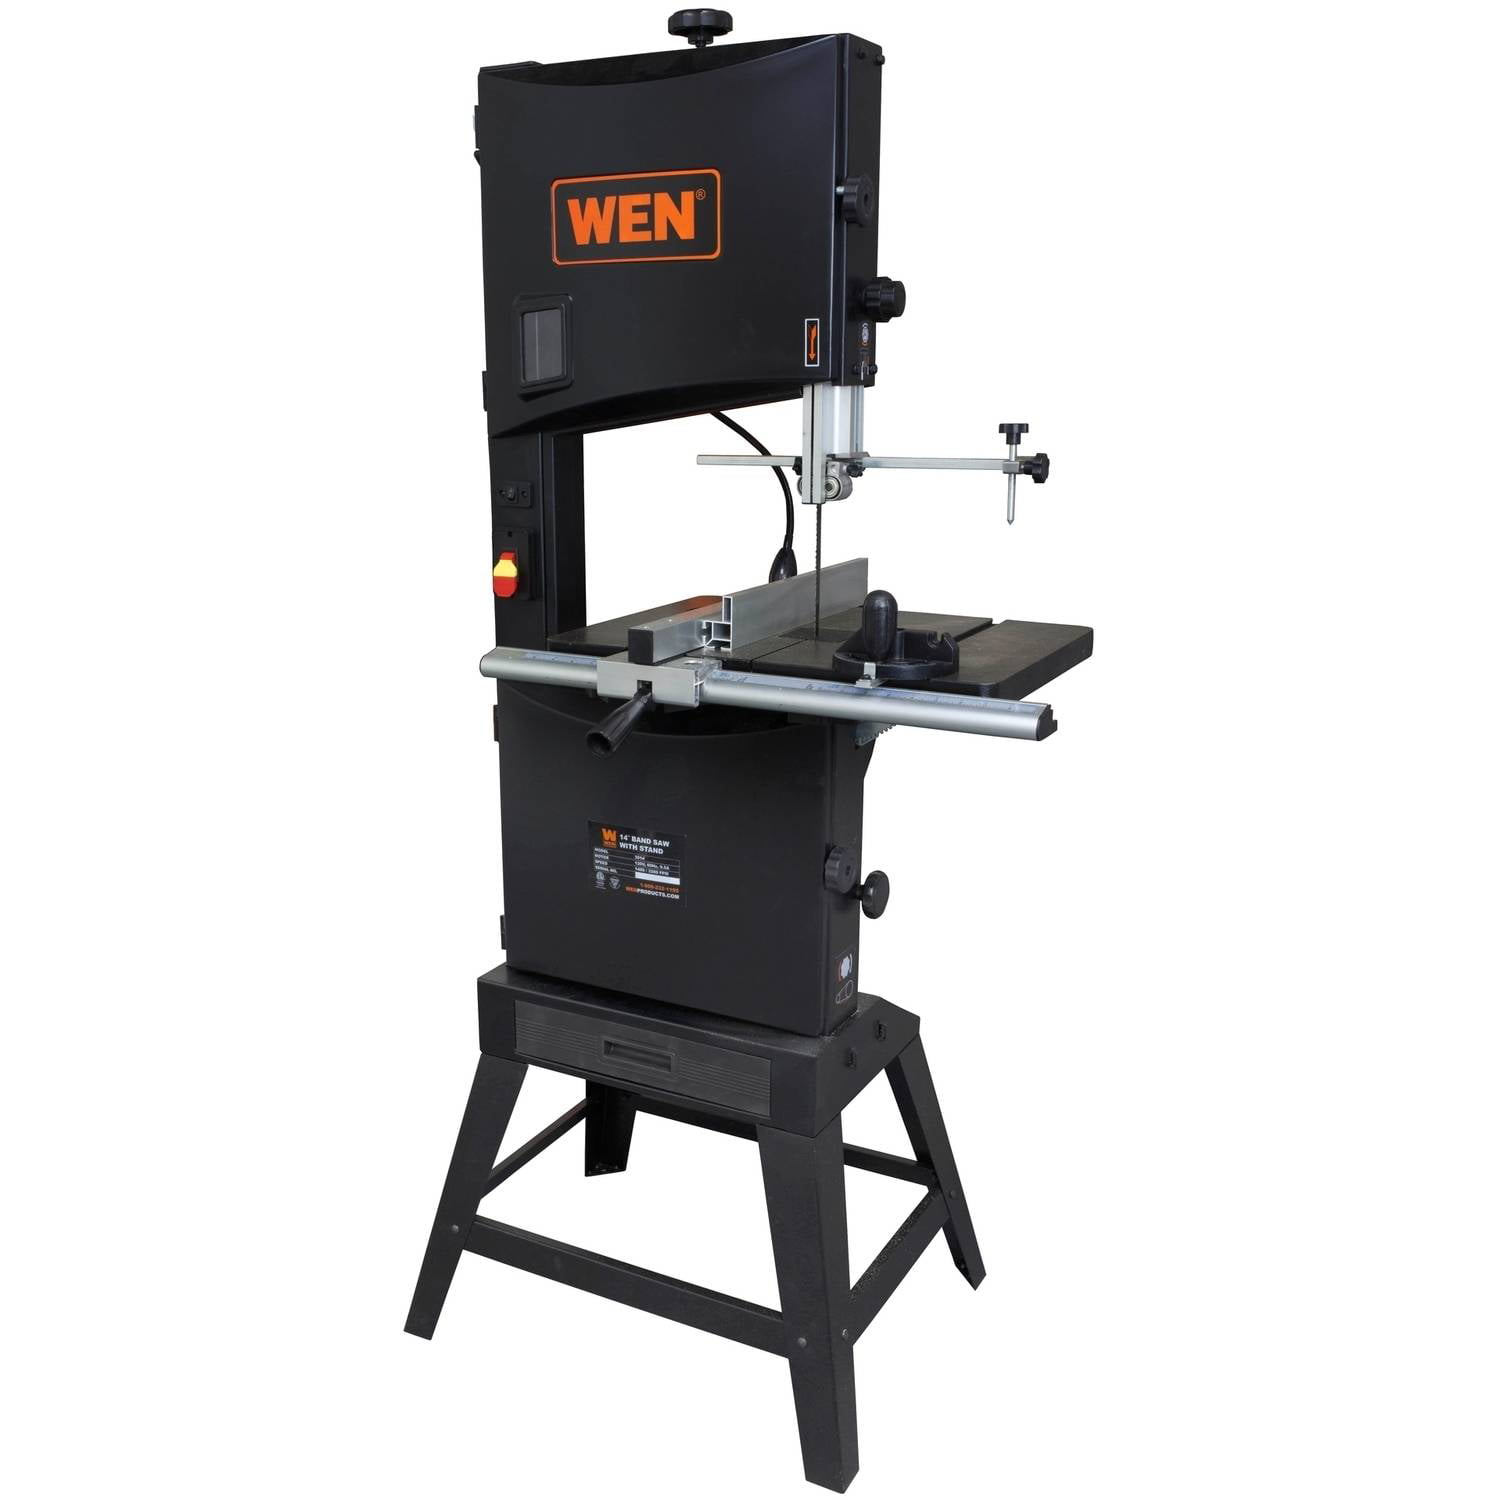 "WEN 14"" Two-Speed Band Saw with Stand and Worklight by WEN"